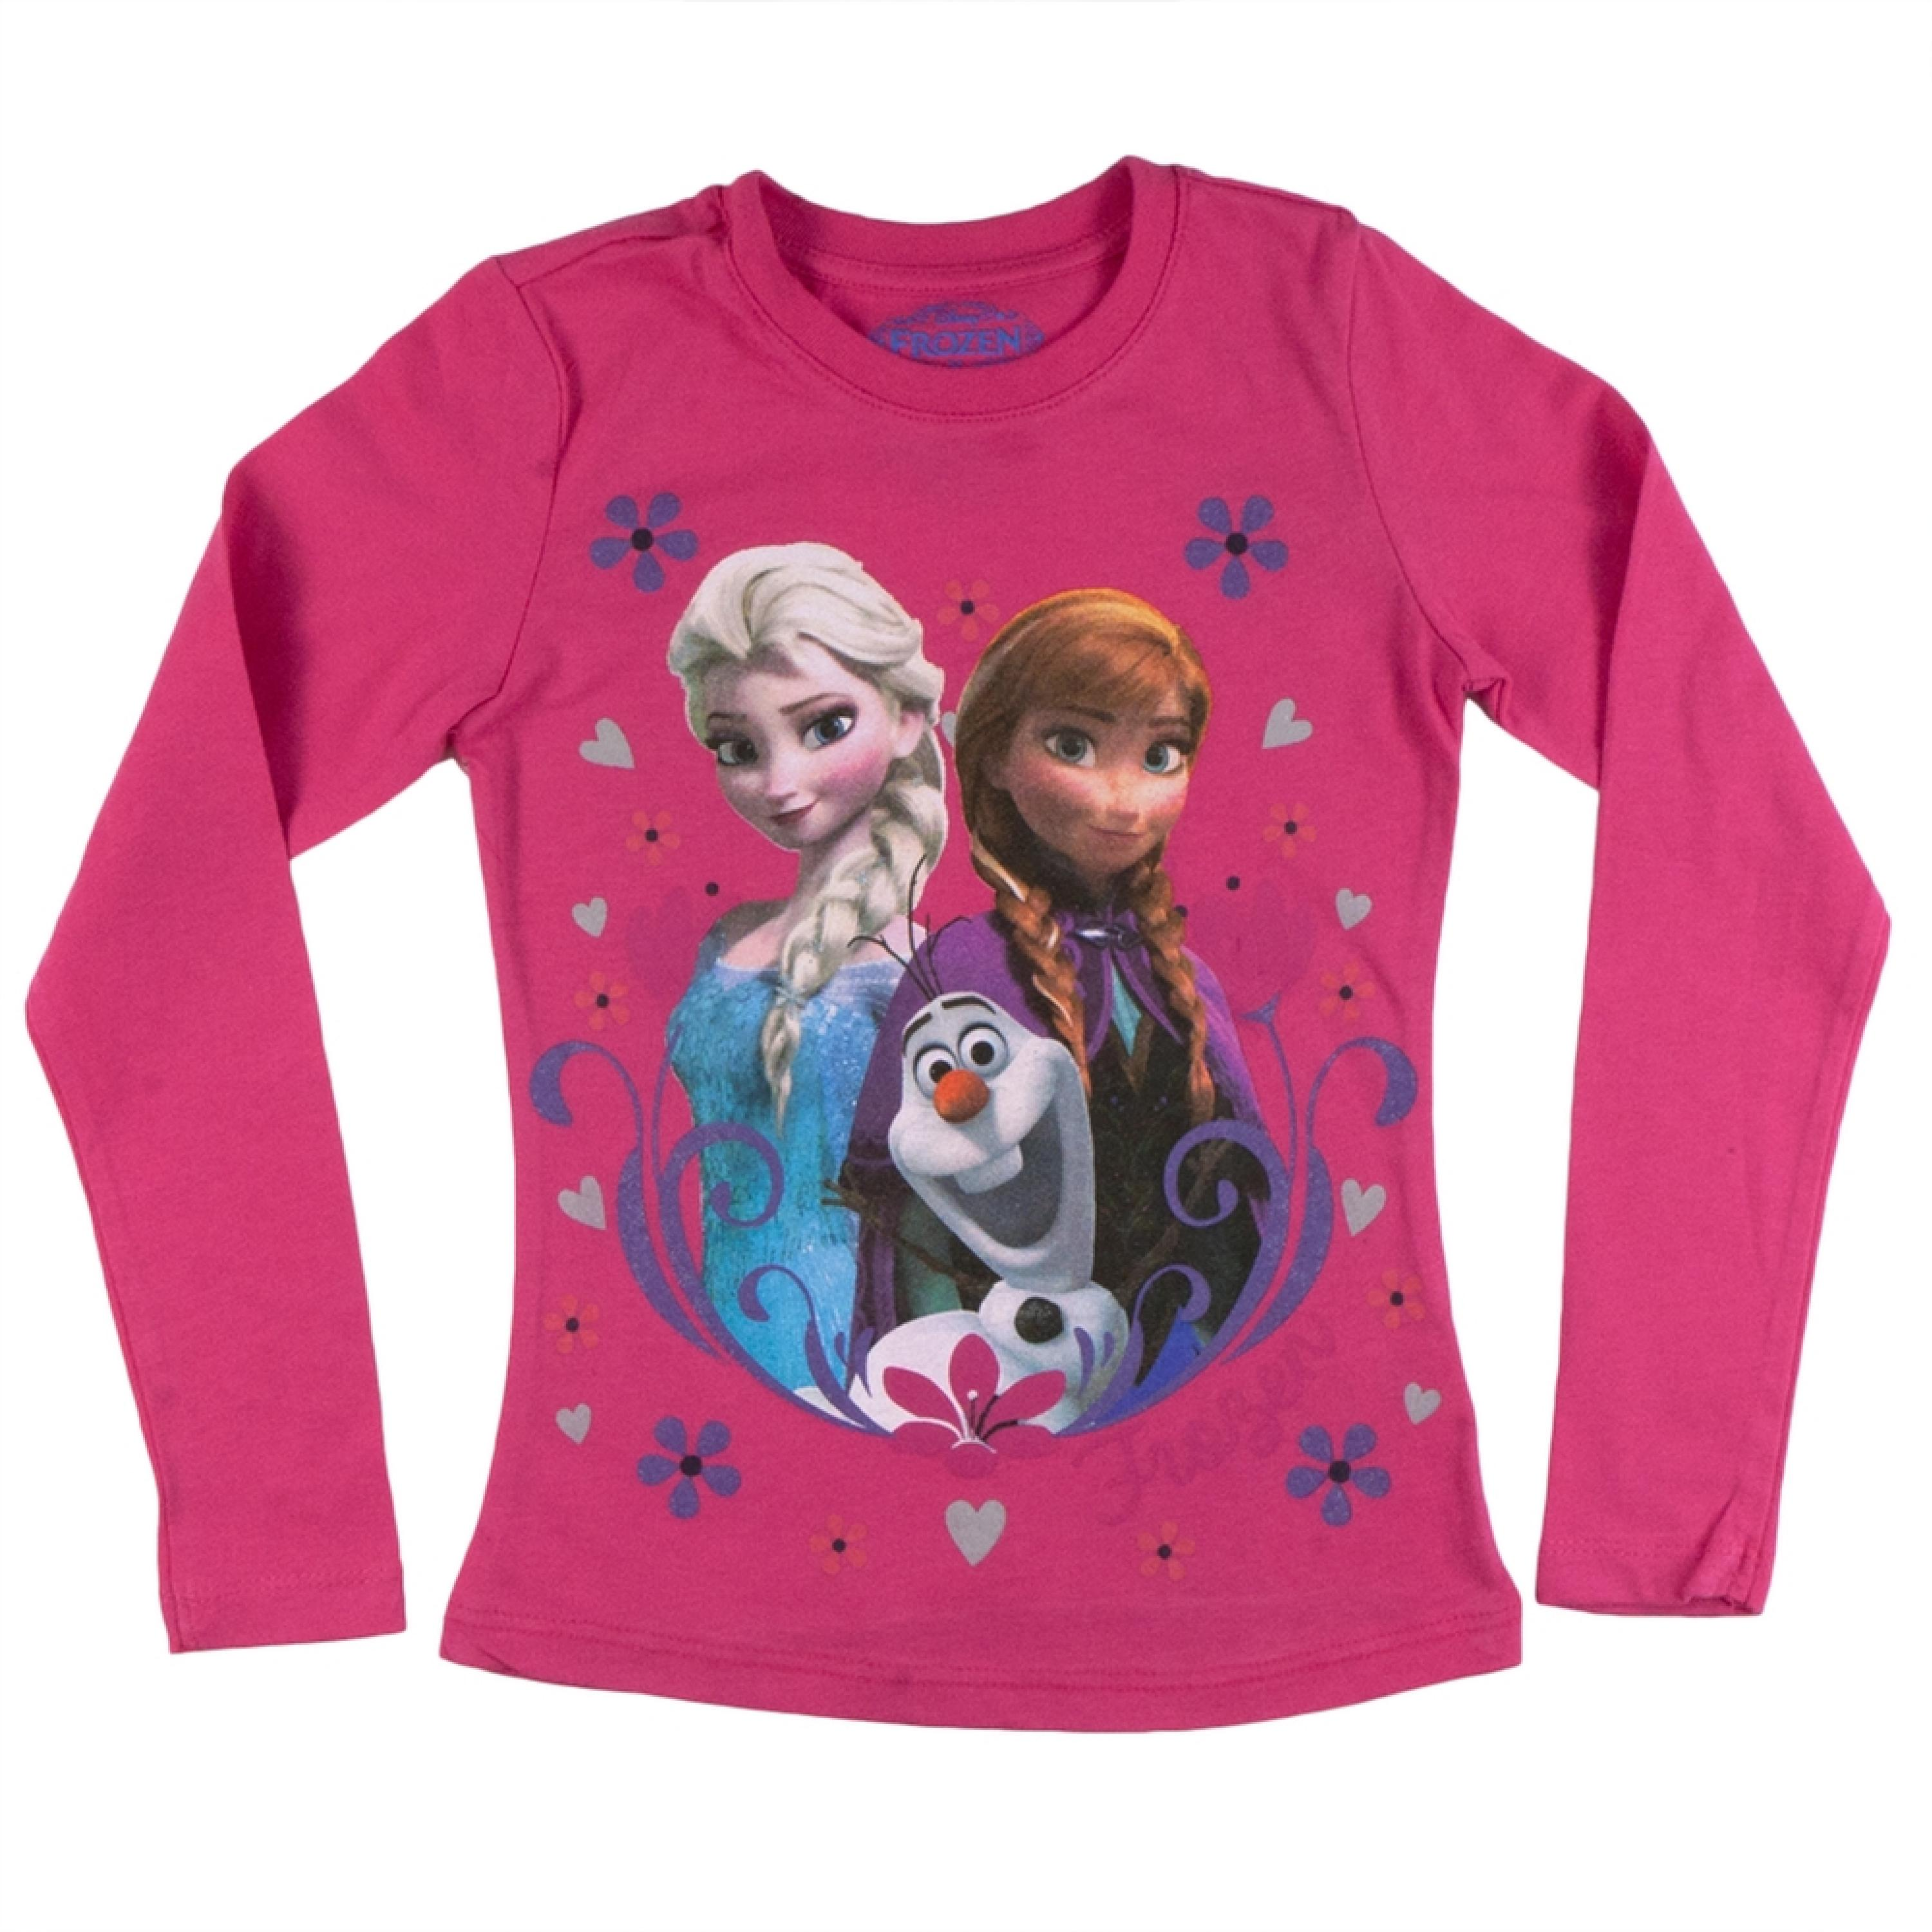 Group Flakes & Hearts Girls Juvy Long Sleeve T-Shirt